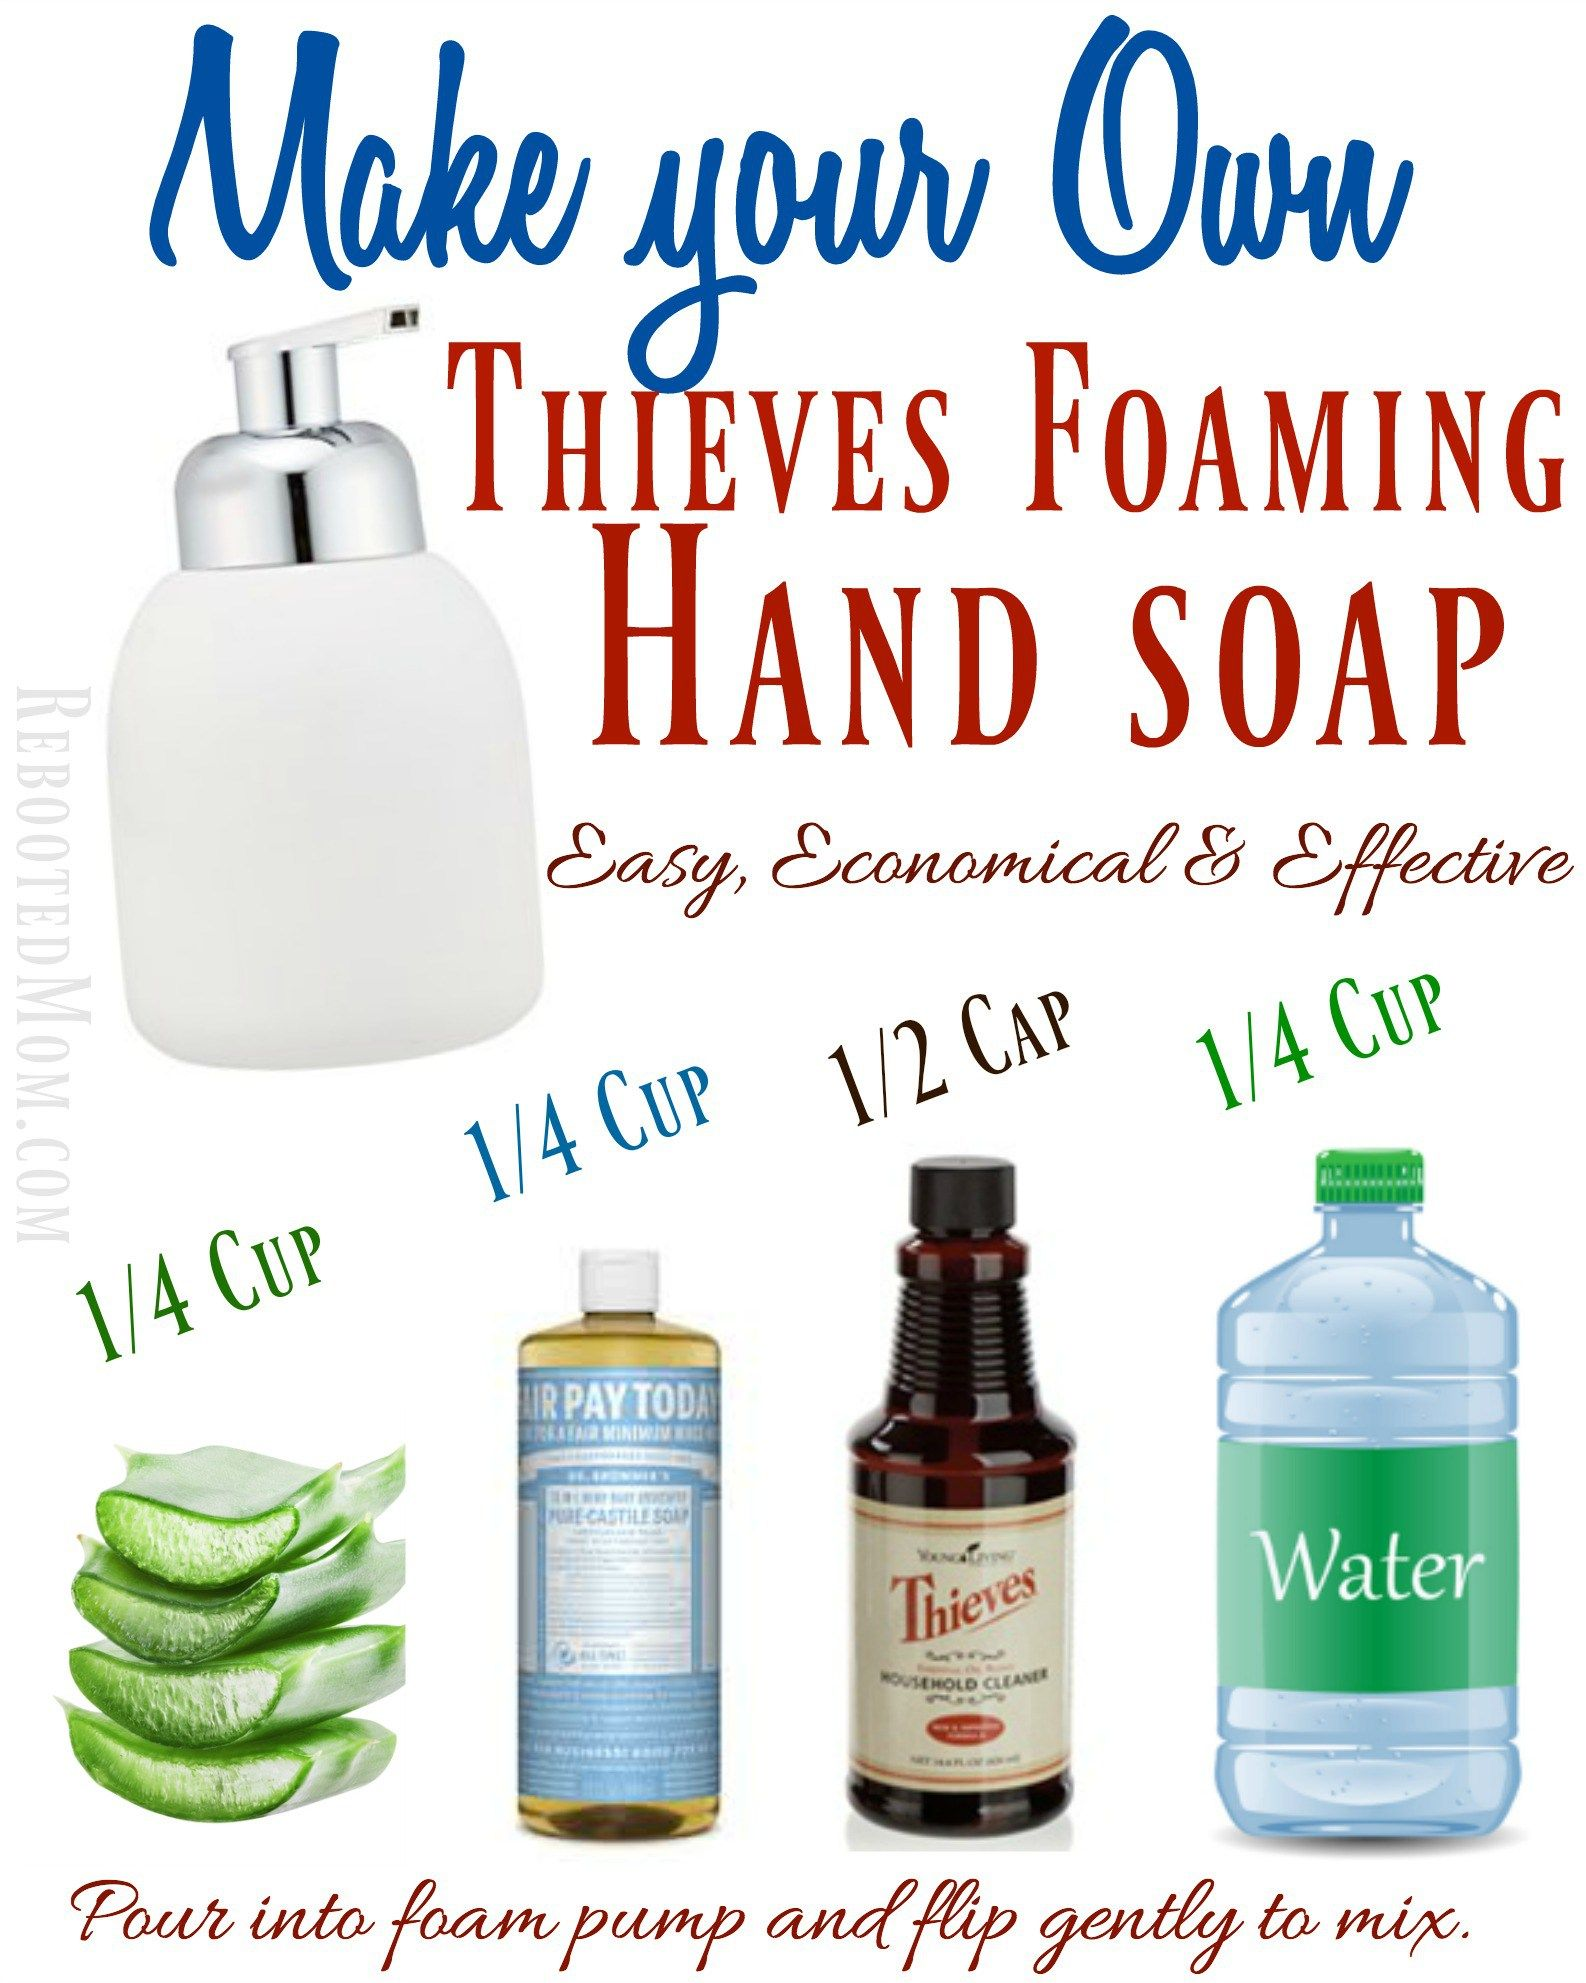 Make your Own Thieves Foaming Hand Soap Homemade hand